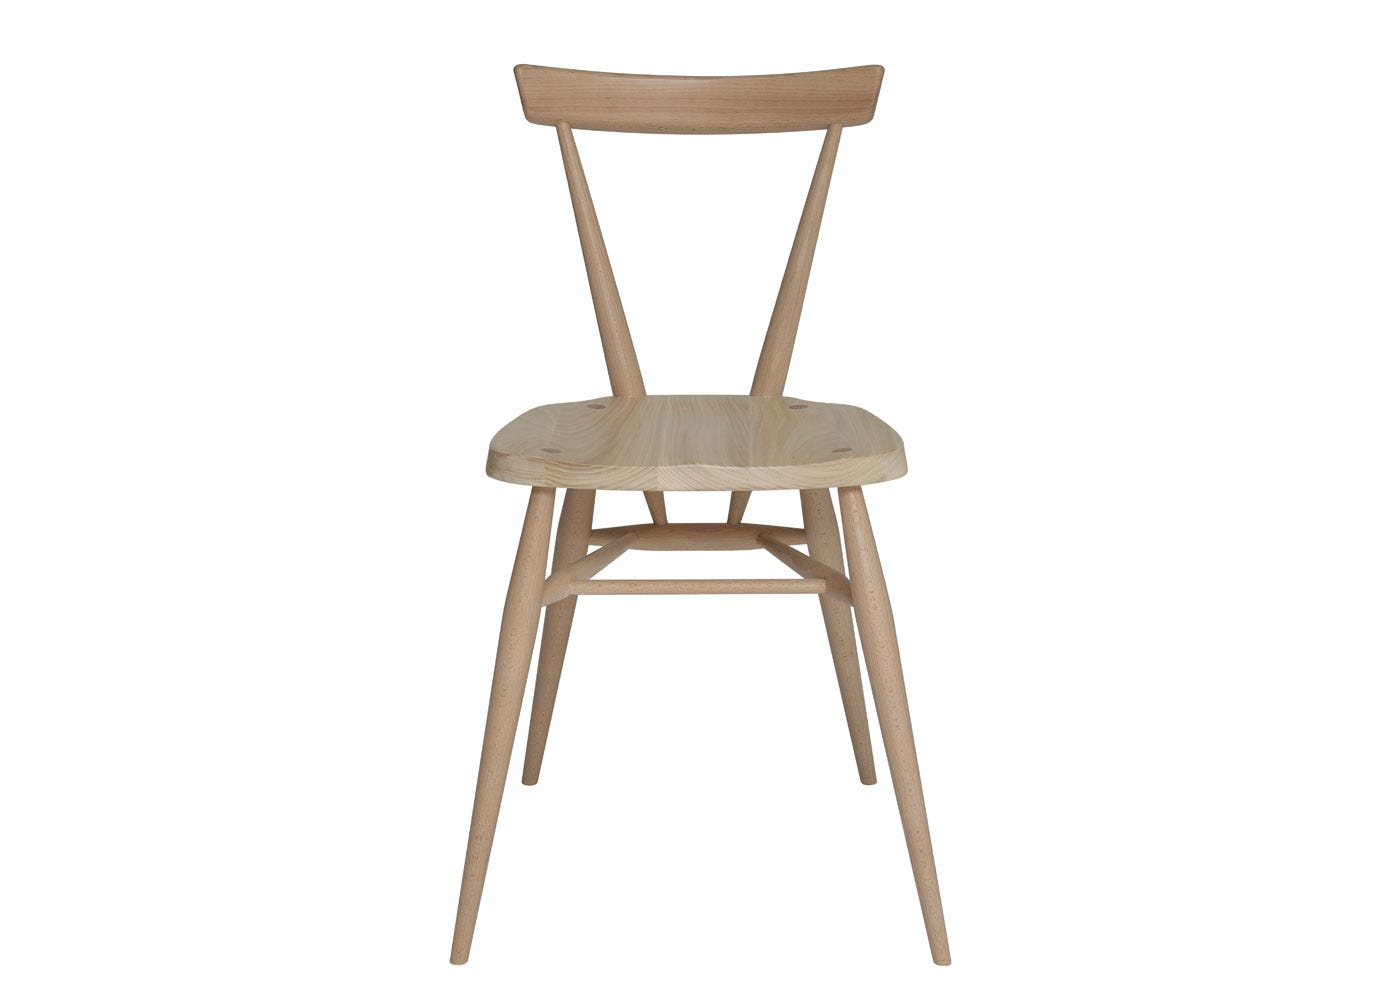 As shown: Originals Stacking Chair Beech and Elm  - Front Profile.